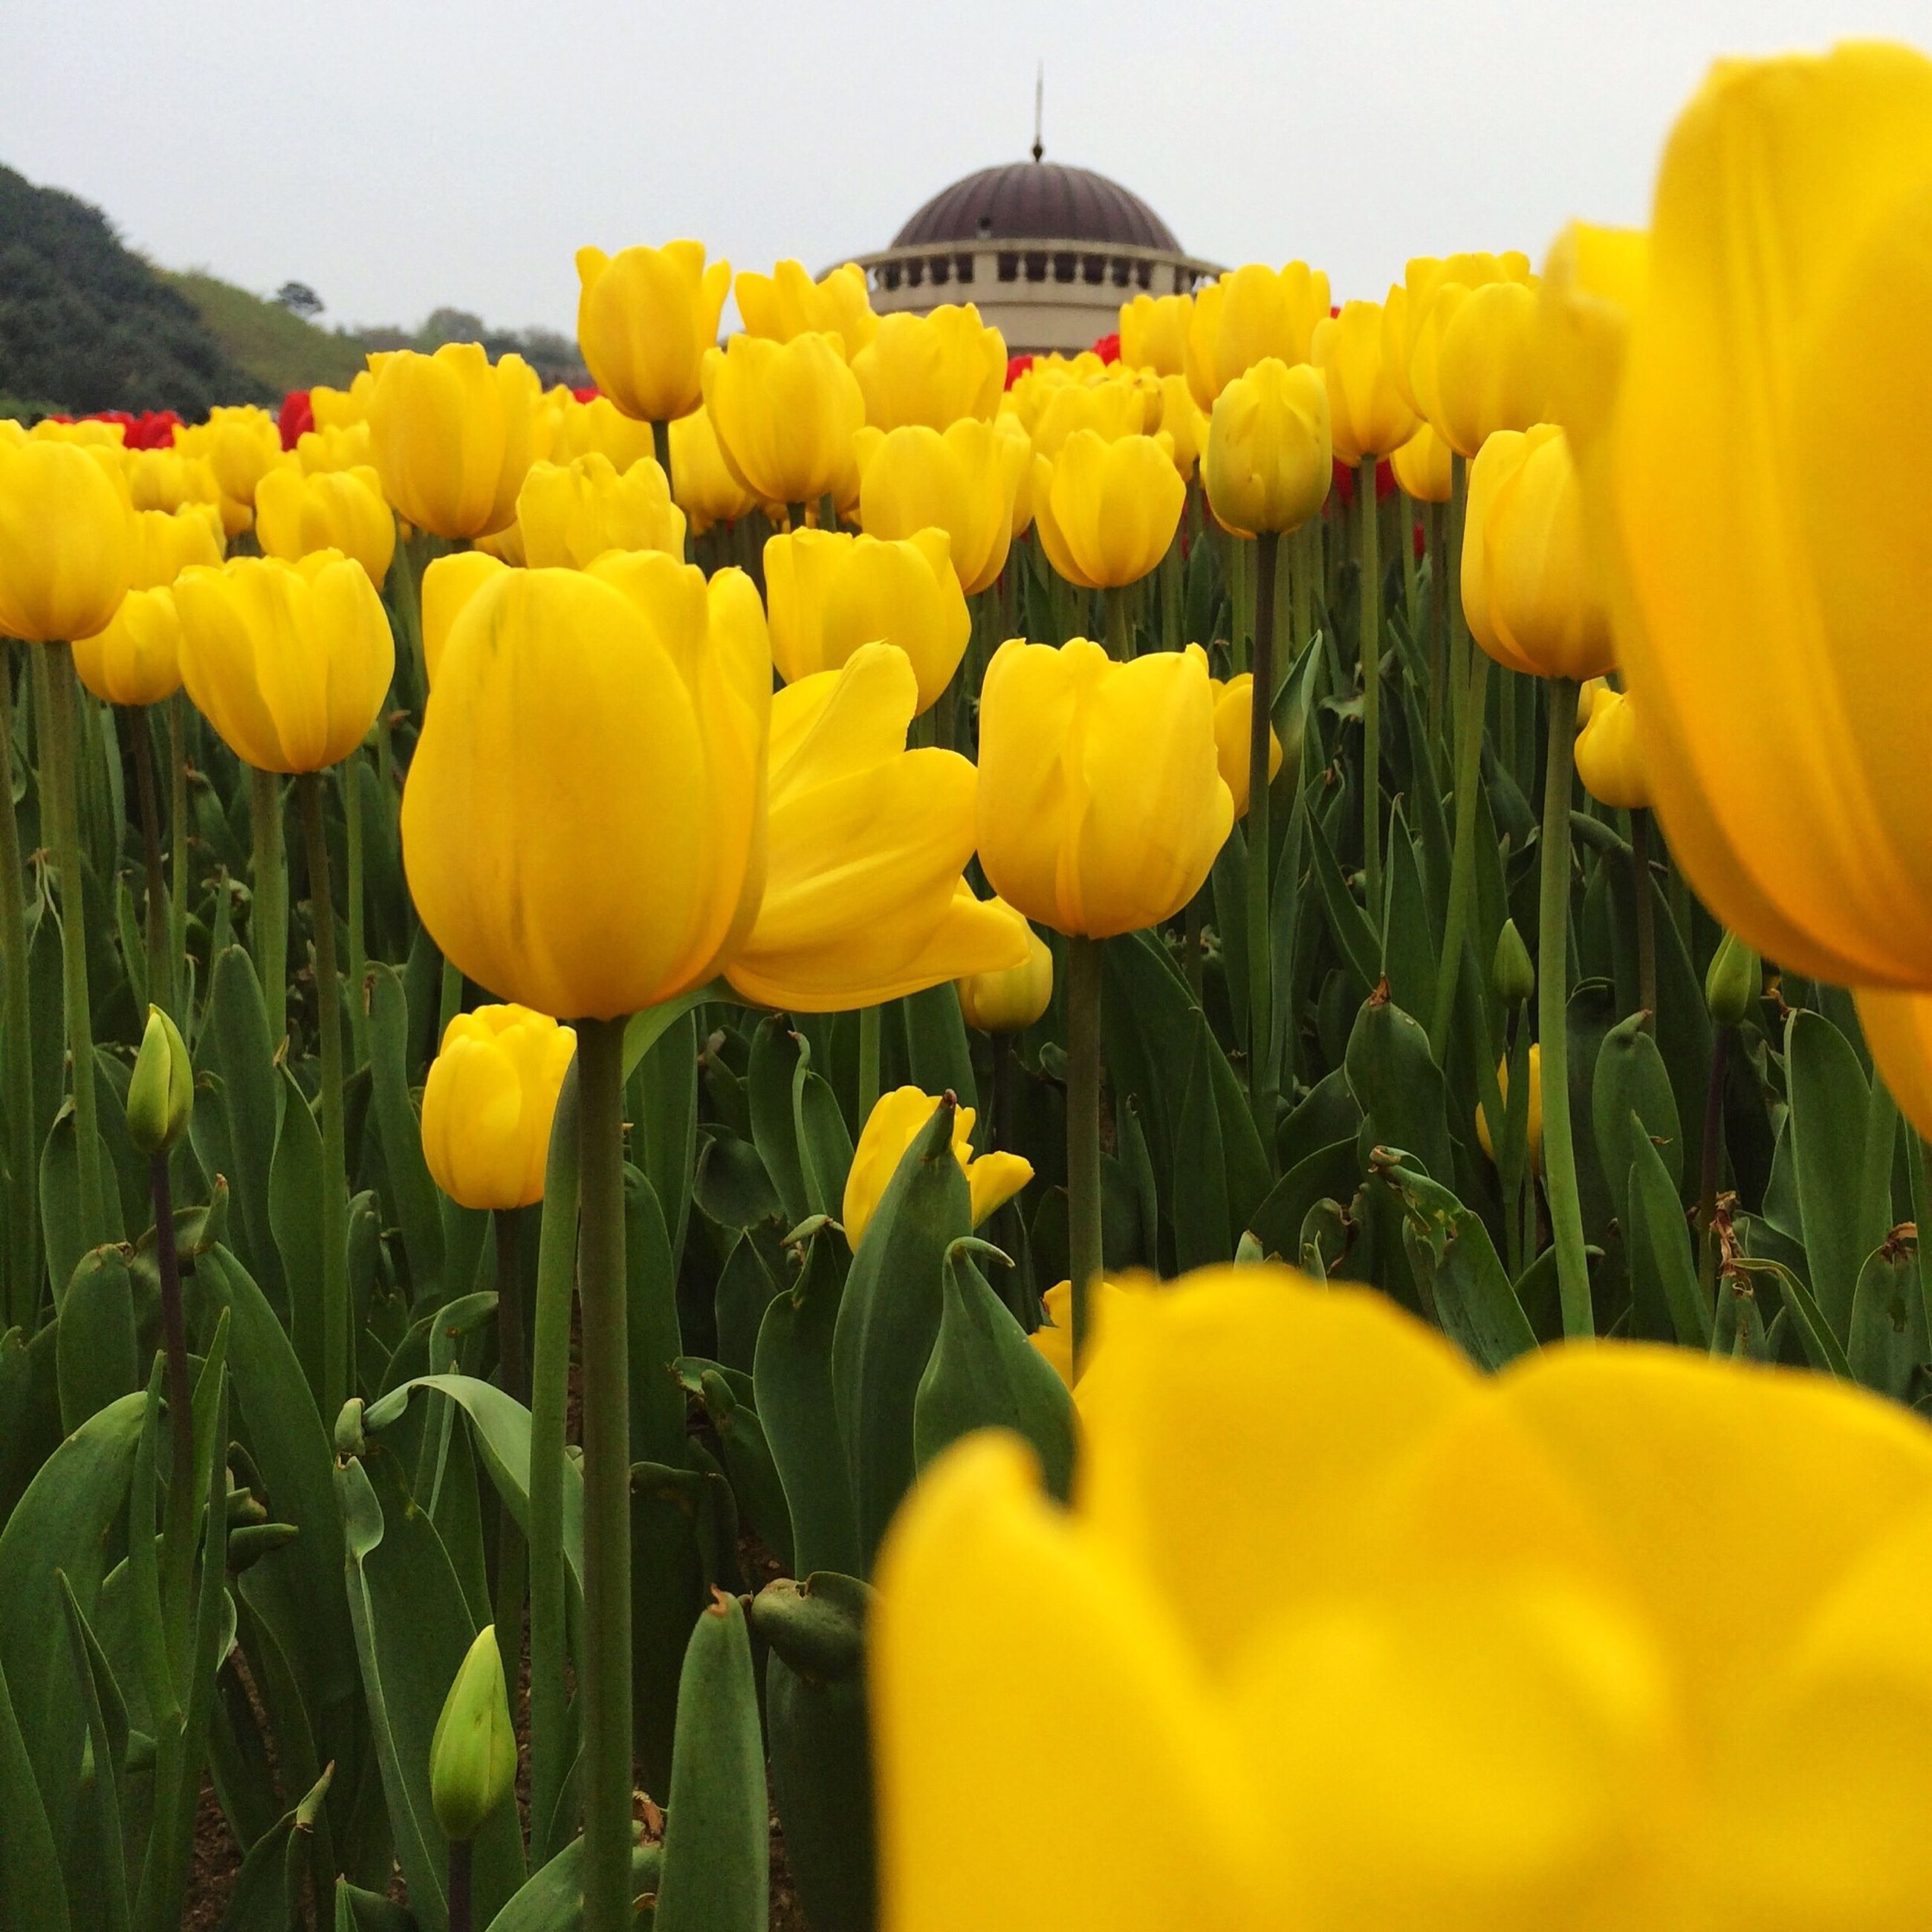 flower, yellow, freshness, fragility, growth, petal, tulip, beauty in nature, field, flower head, blooming, plant, nature, agriculture, abundance, rural scene, clear sky, flowerbed, in bloom, sky